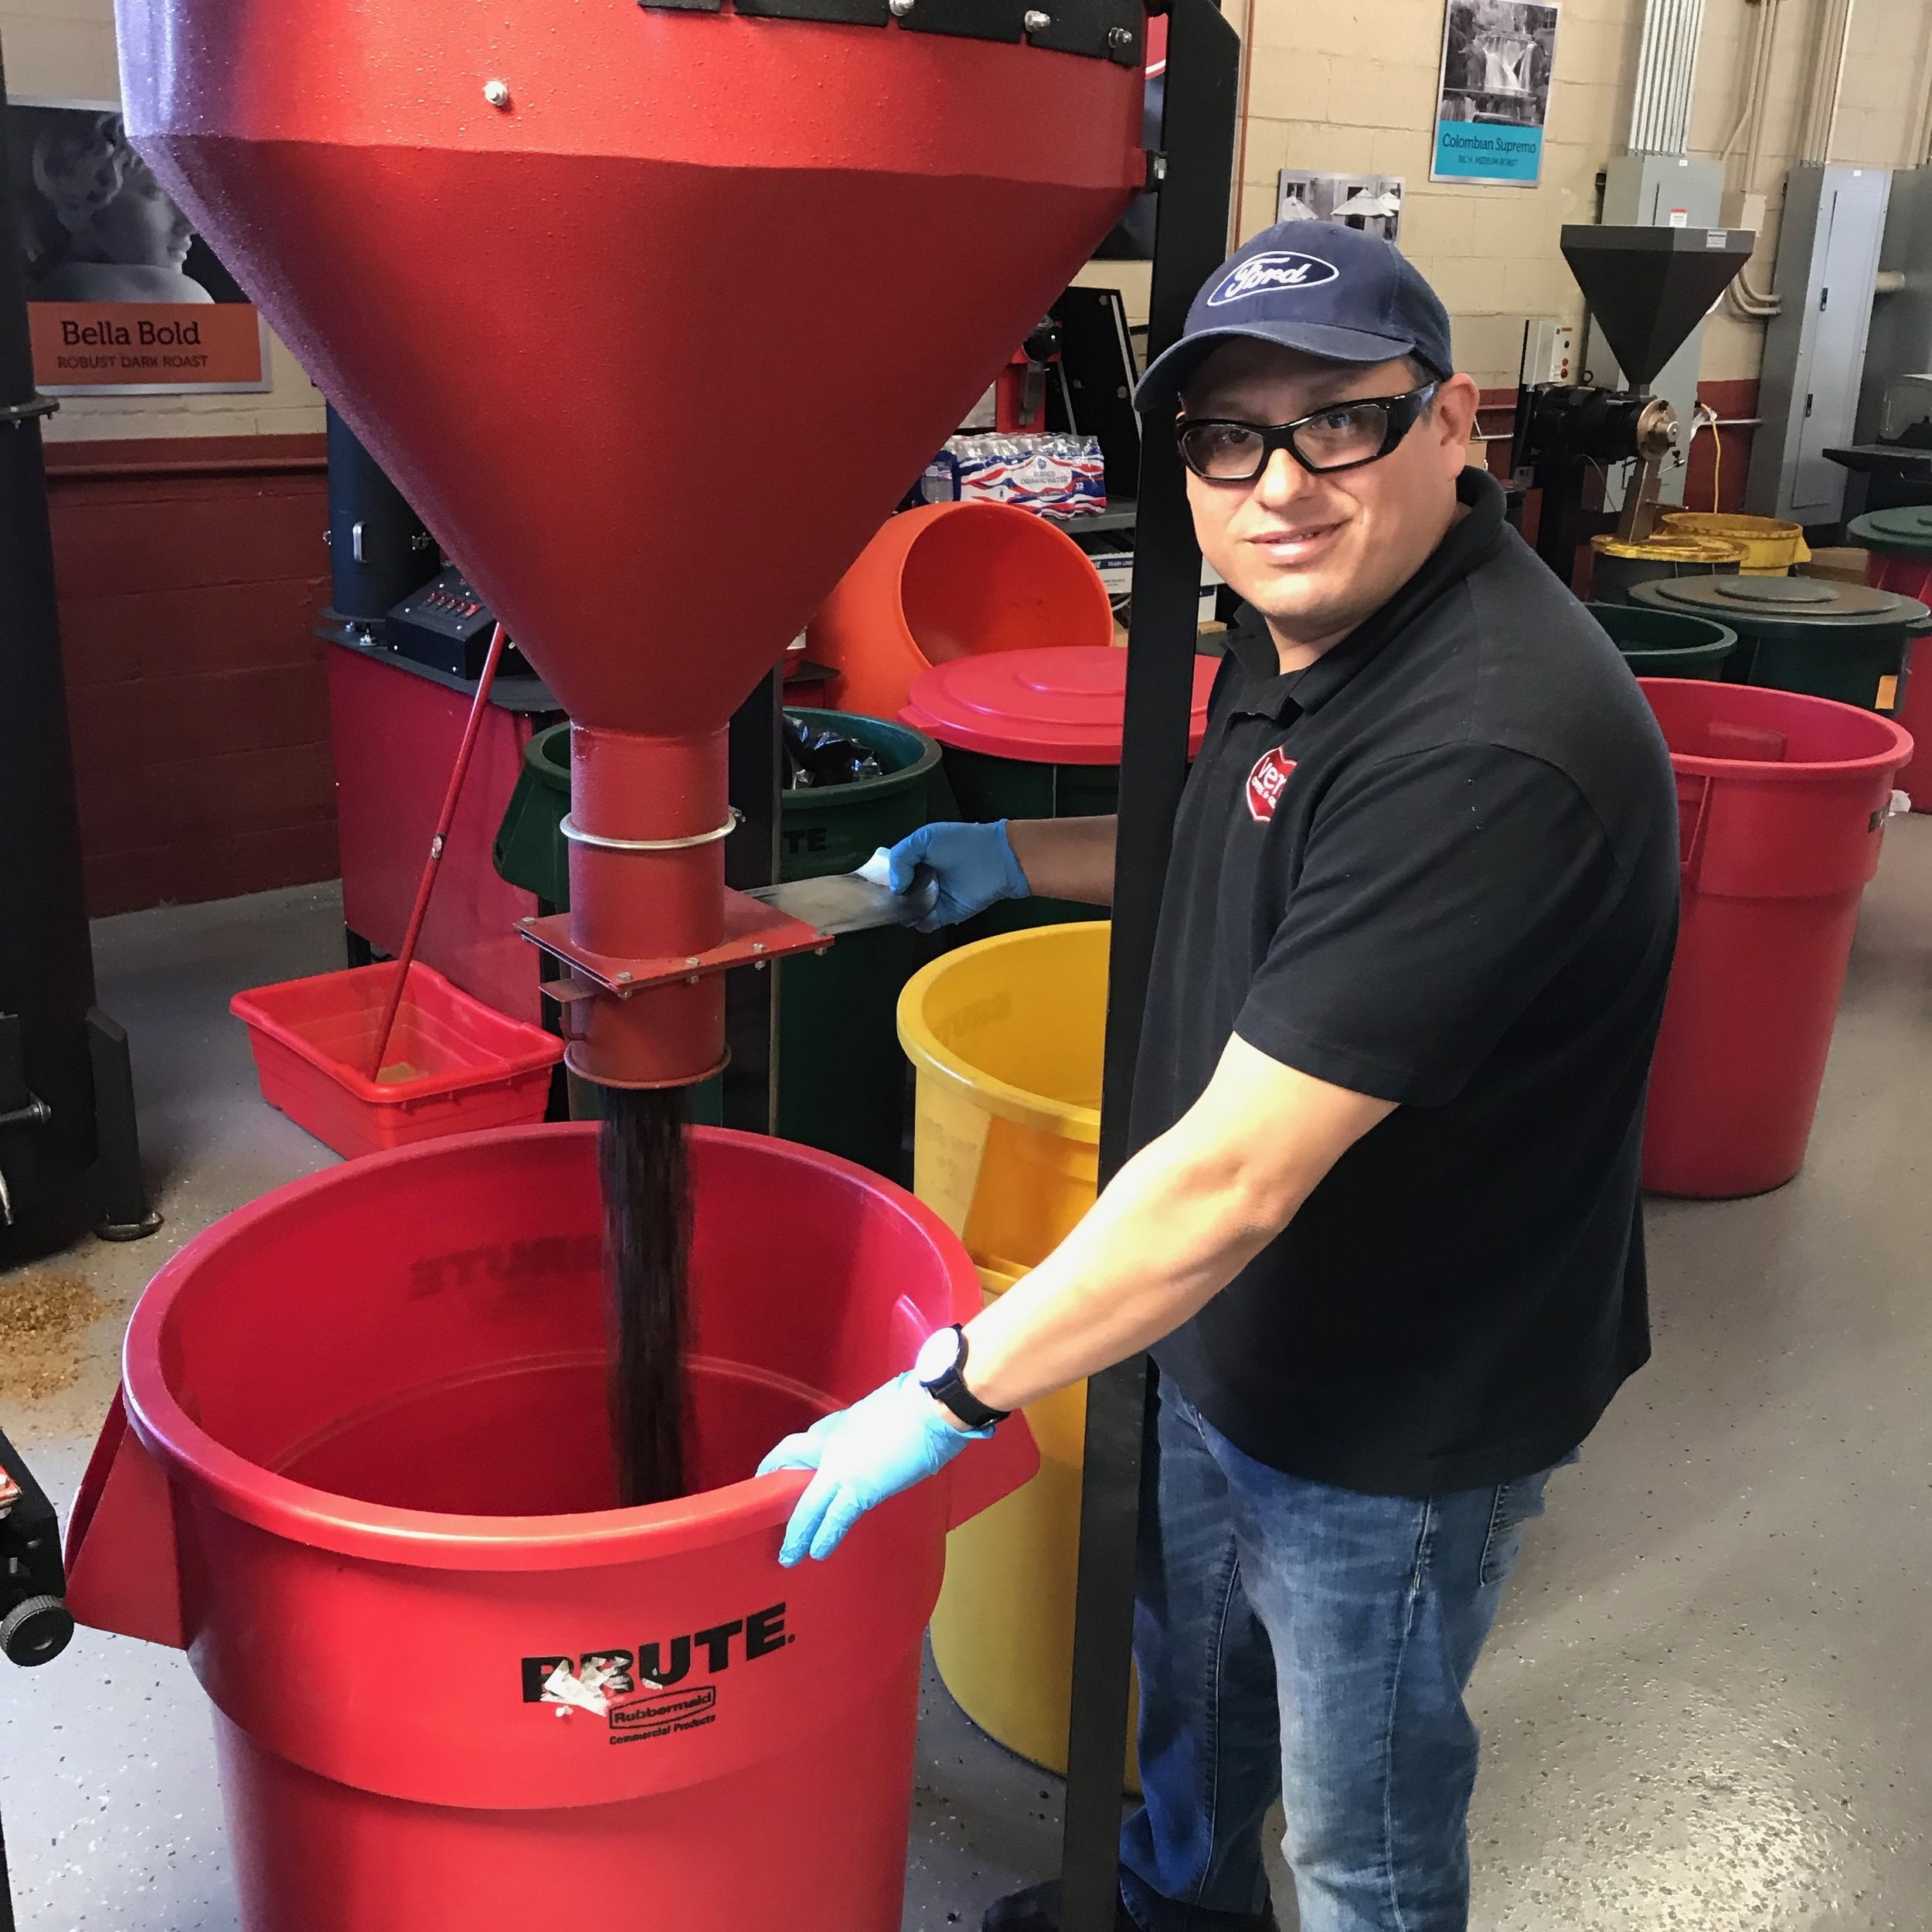 Vicente Villafuerte - Coffee Operations ManagerVicente has forged his path in the food industry through hard work and determination. He began his career over 15 years ago working in food delivery. He joined the Alamode Foods team 5 years ago, and he is currently our coffee operations manager. Vicente is responsible for machine maintenance, packaging, receiving, delivering, and invoicing. His favorite parts of his work day are experimenting with new coffee flavors, learning more about the industry, and meeting new people. Outside of the office, Vicente spends his time listening to music and working on cars.Favorite Coffee: Colombian